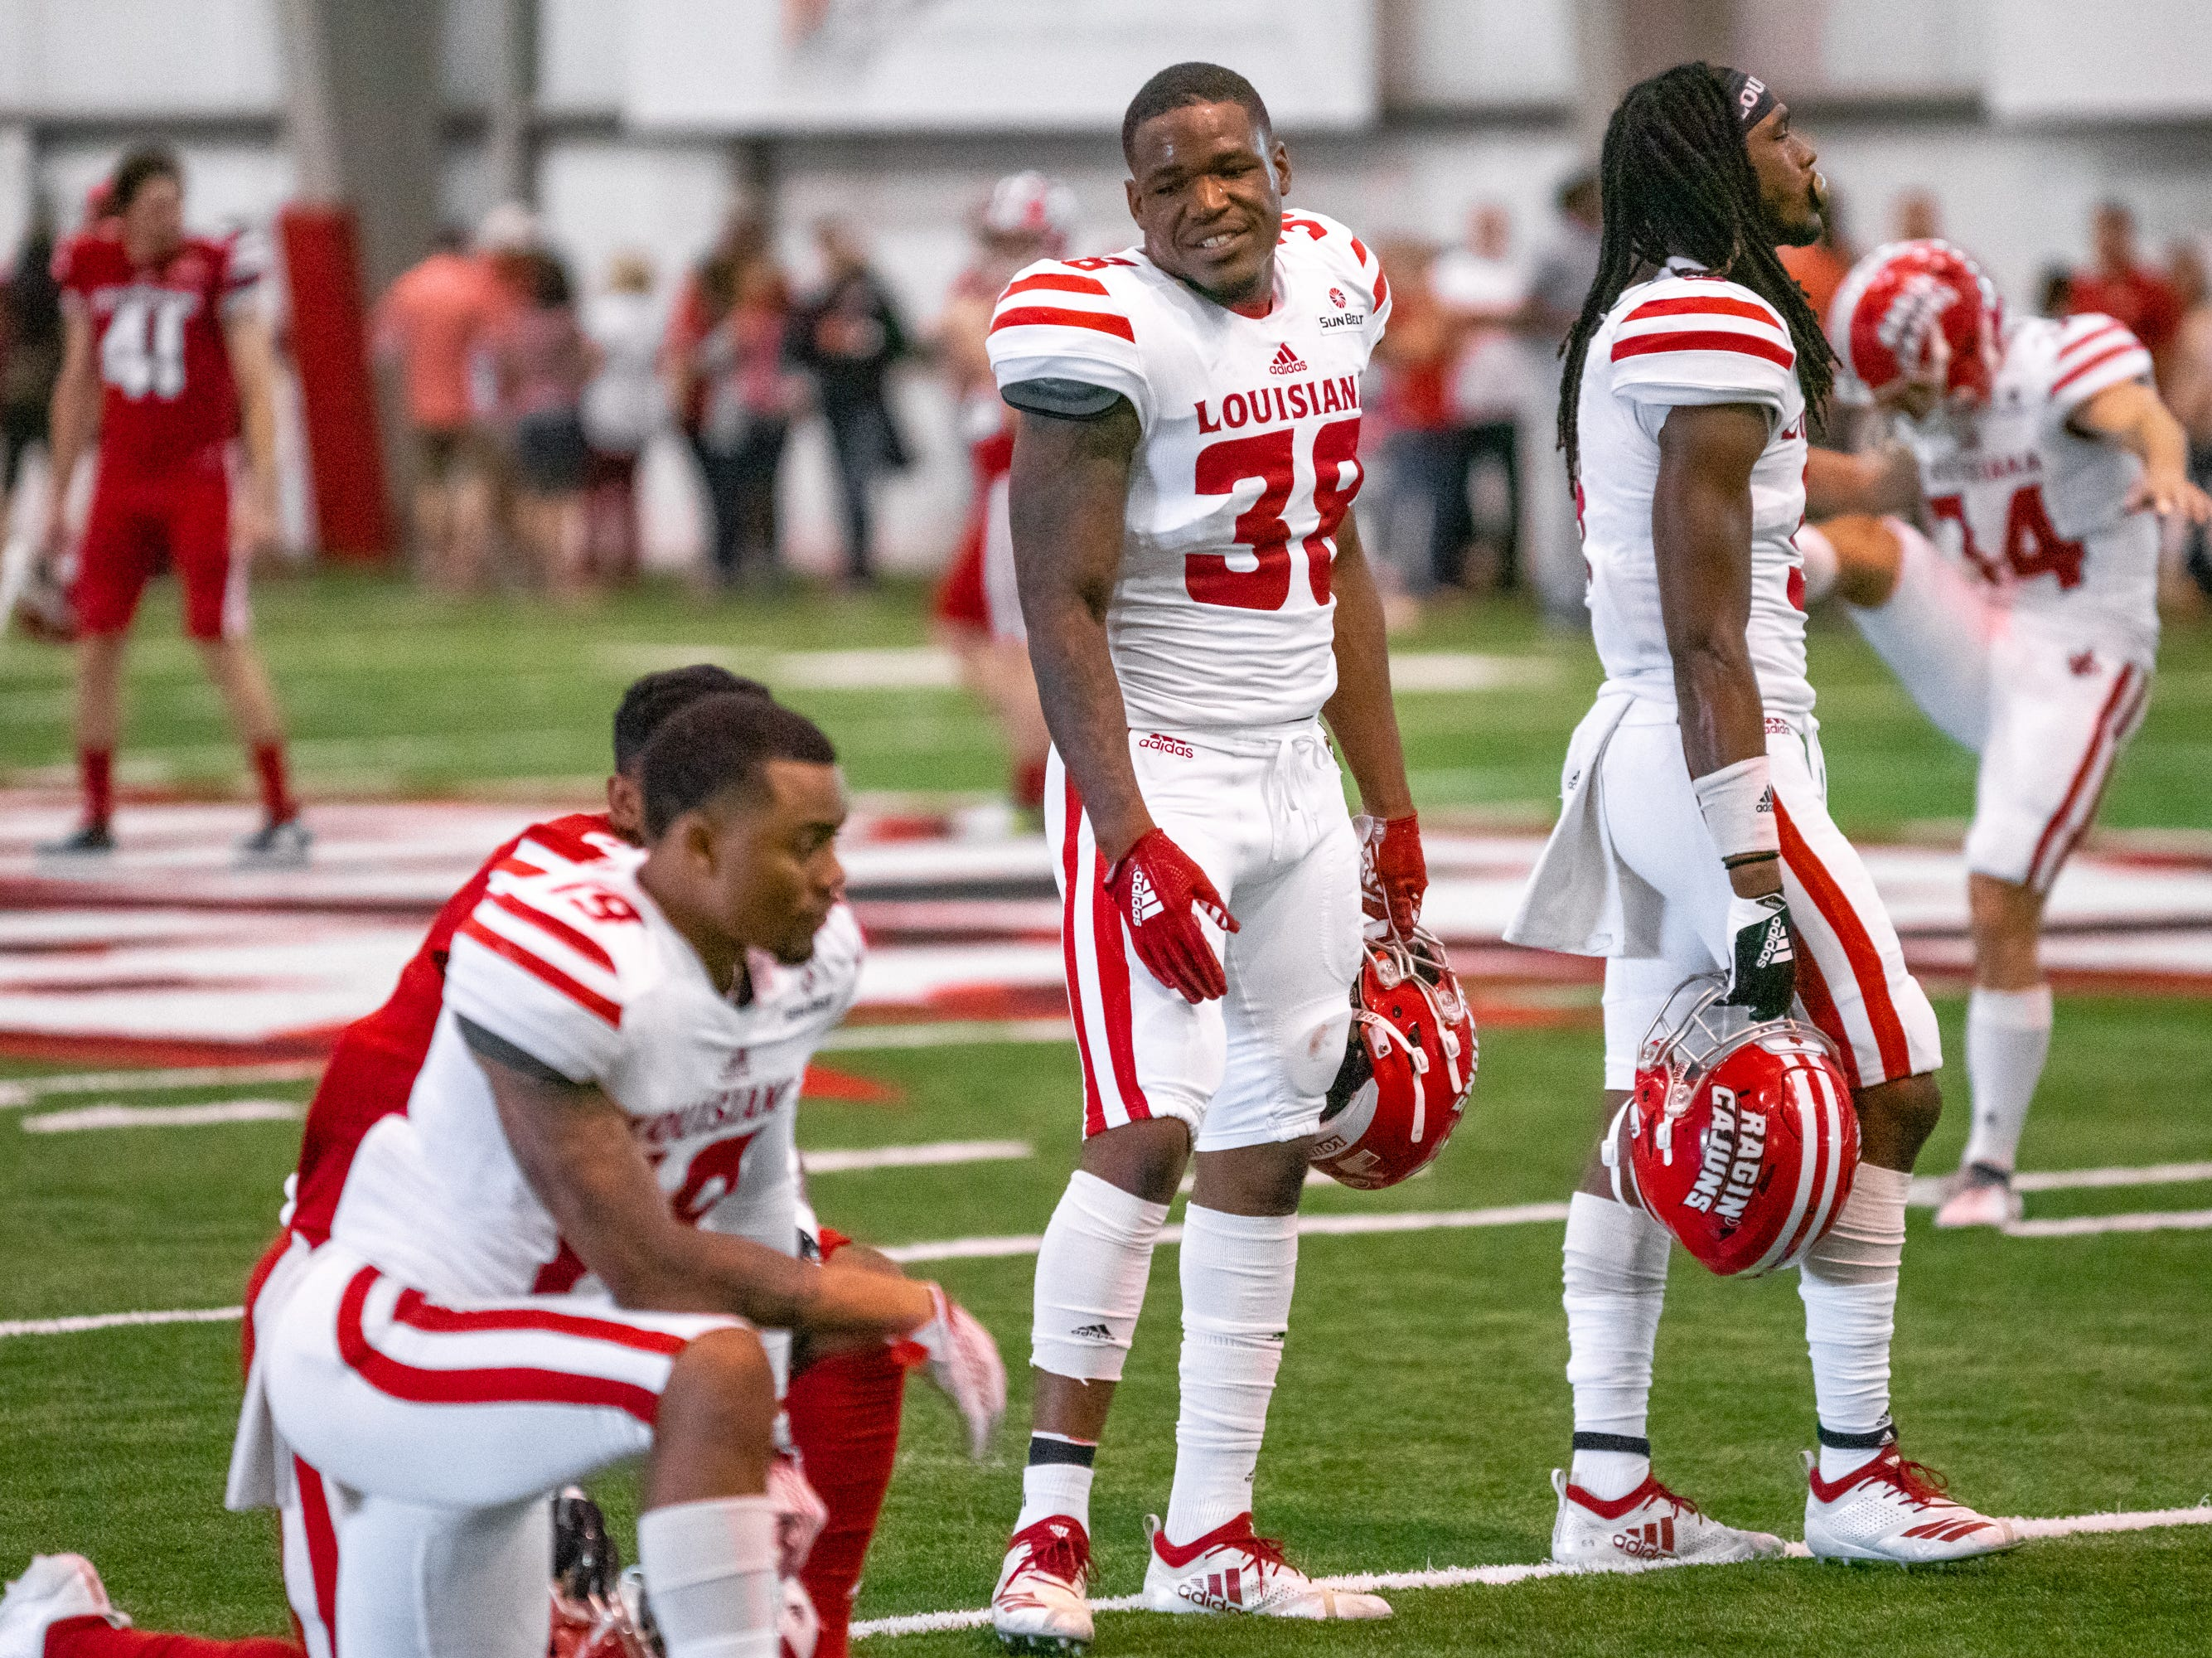 UL's Terik Miller talks to his teammates on the field as the Ragin' Cajuns football team plays their annual Spring football game against one another in the Leon Moncla trainig facility on April 13, 2019.